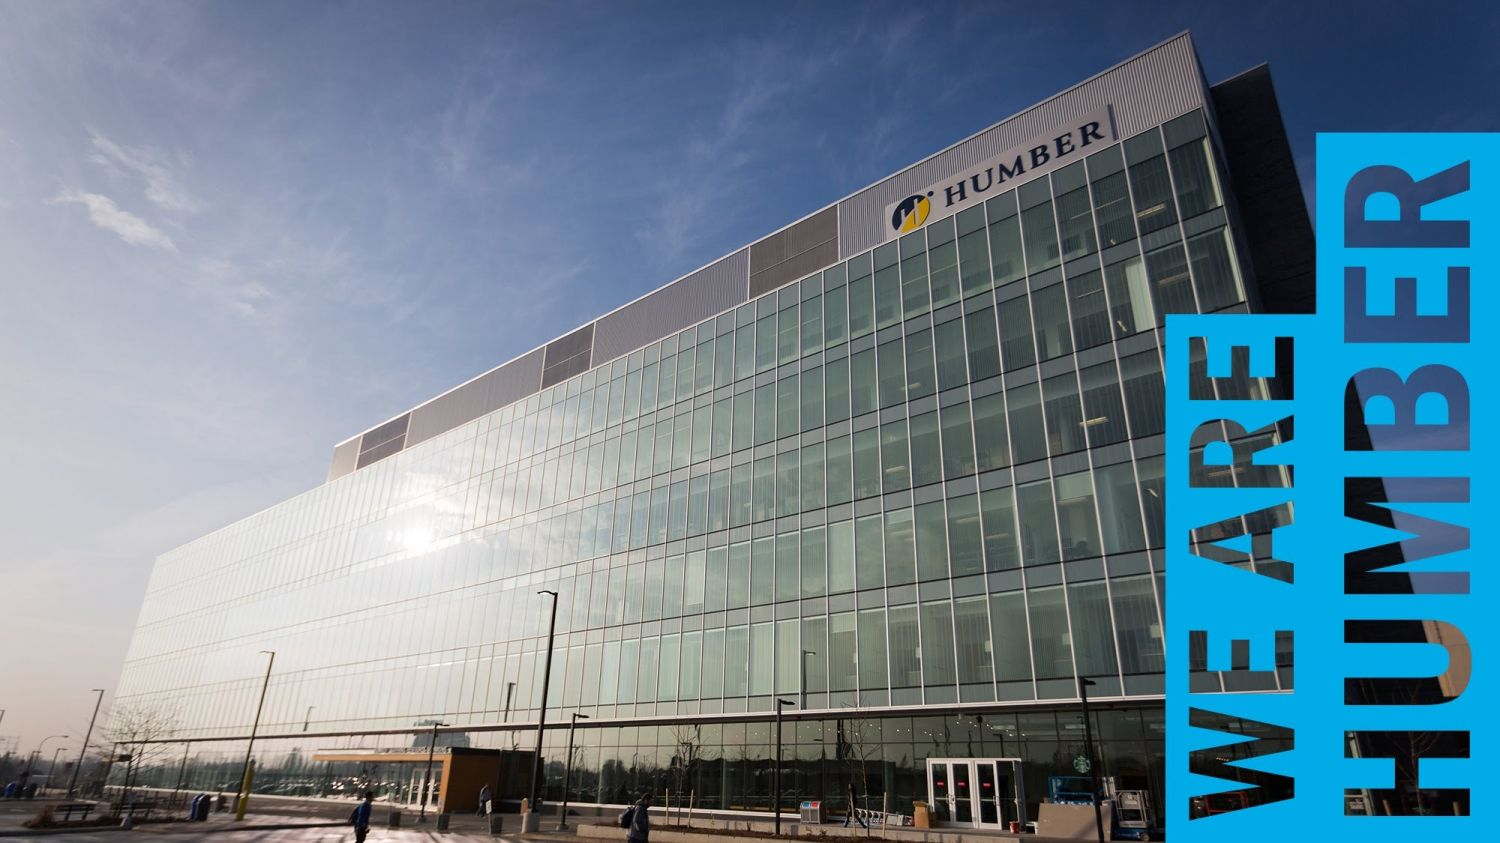 Welcome to Humber College in Toronto, Canada